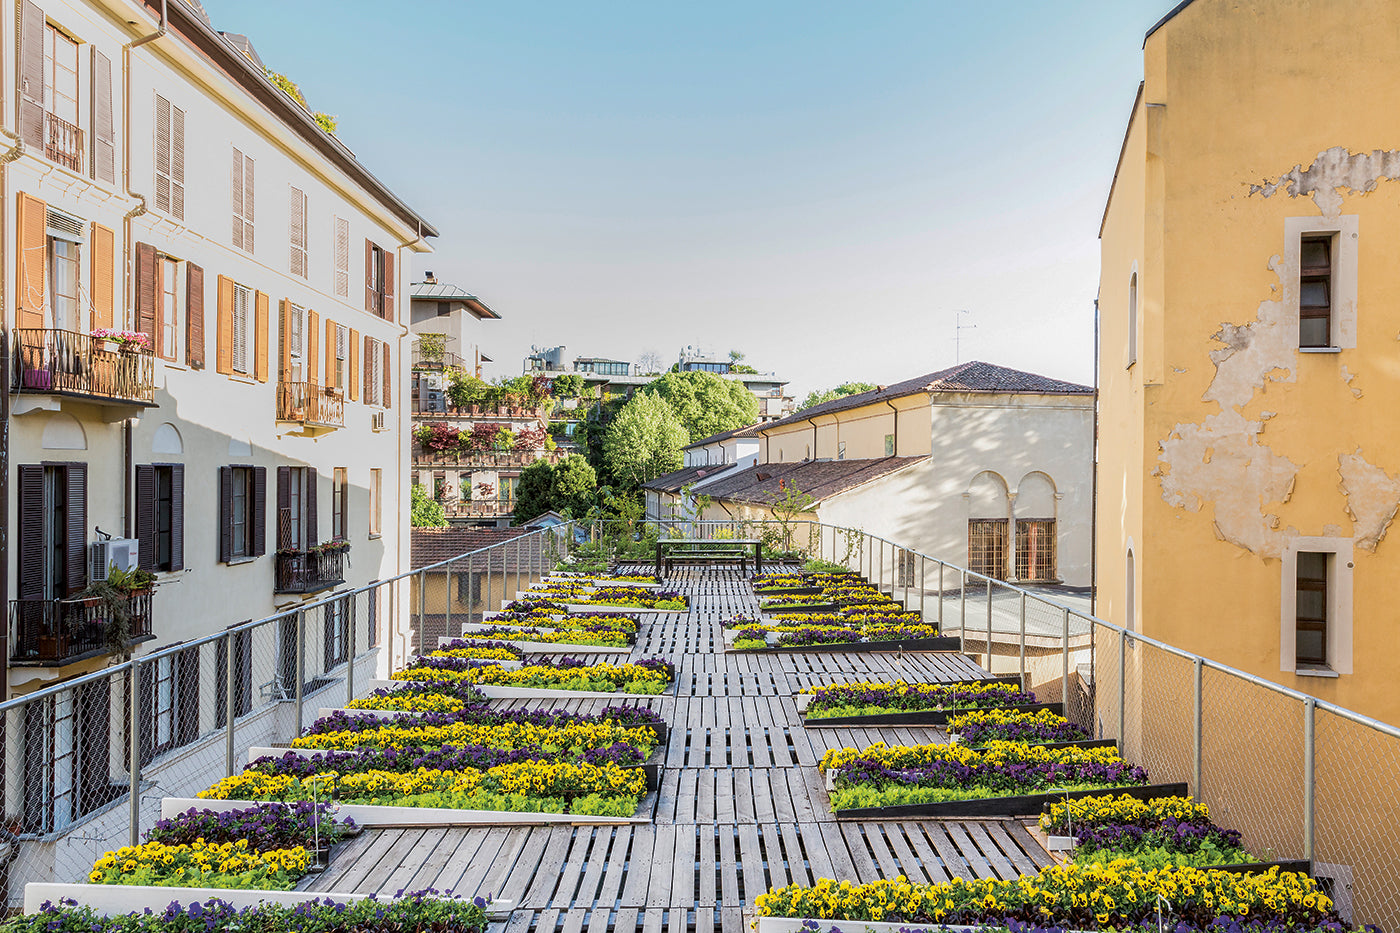 A Rooftop Garden Grows A Community in Milan